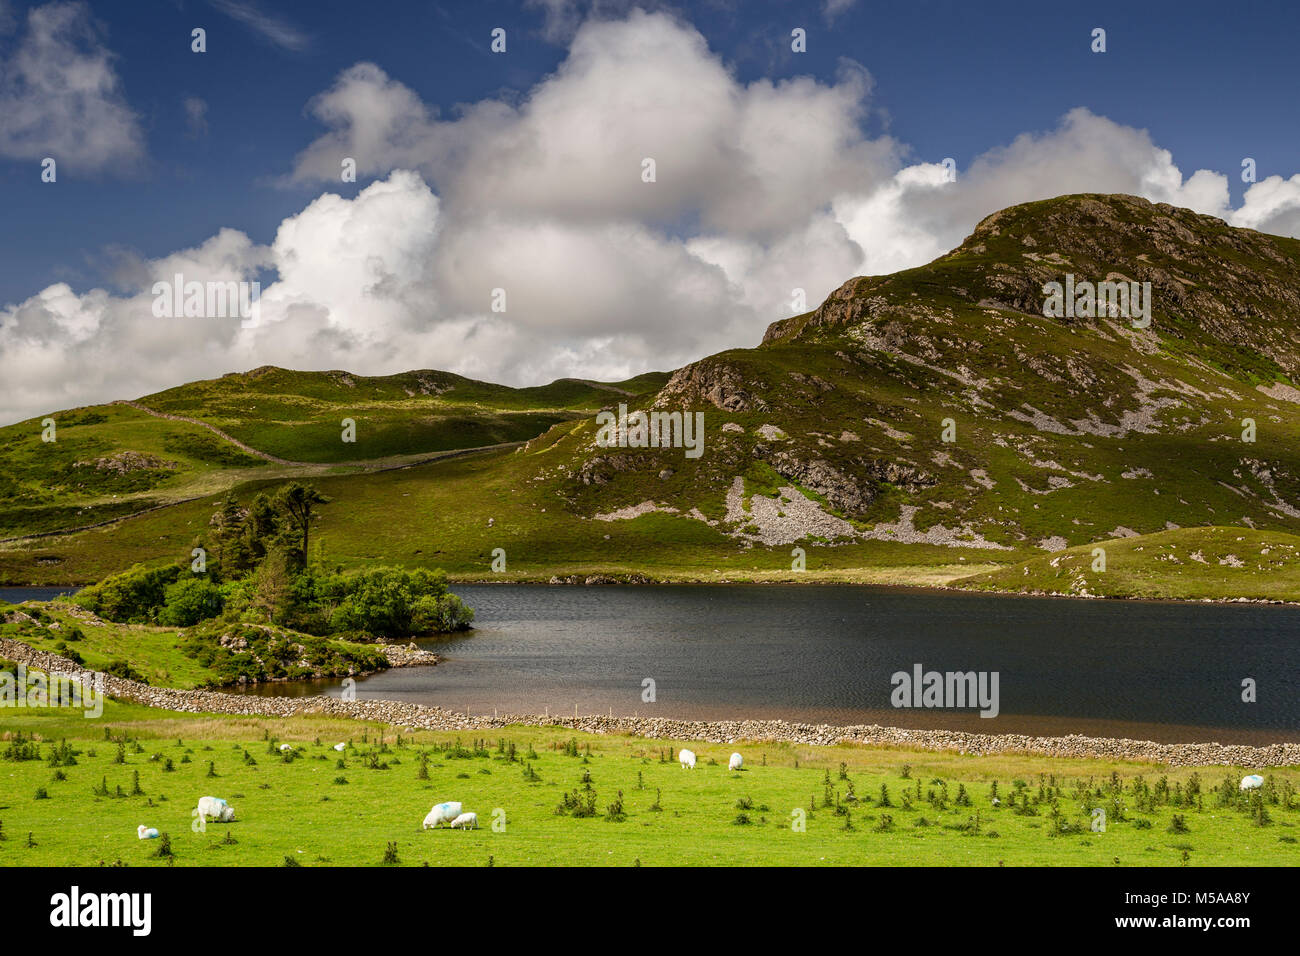 Field of thistles and sheep at Cregennan Lakes, Snowdonia, Wales on a sunny day Stock Photo